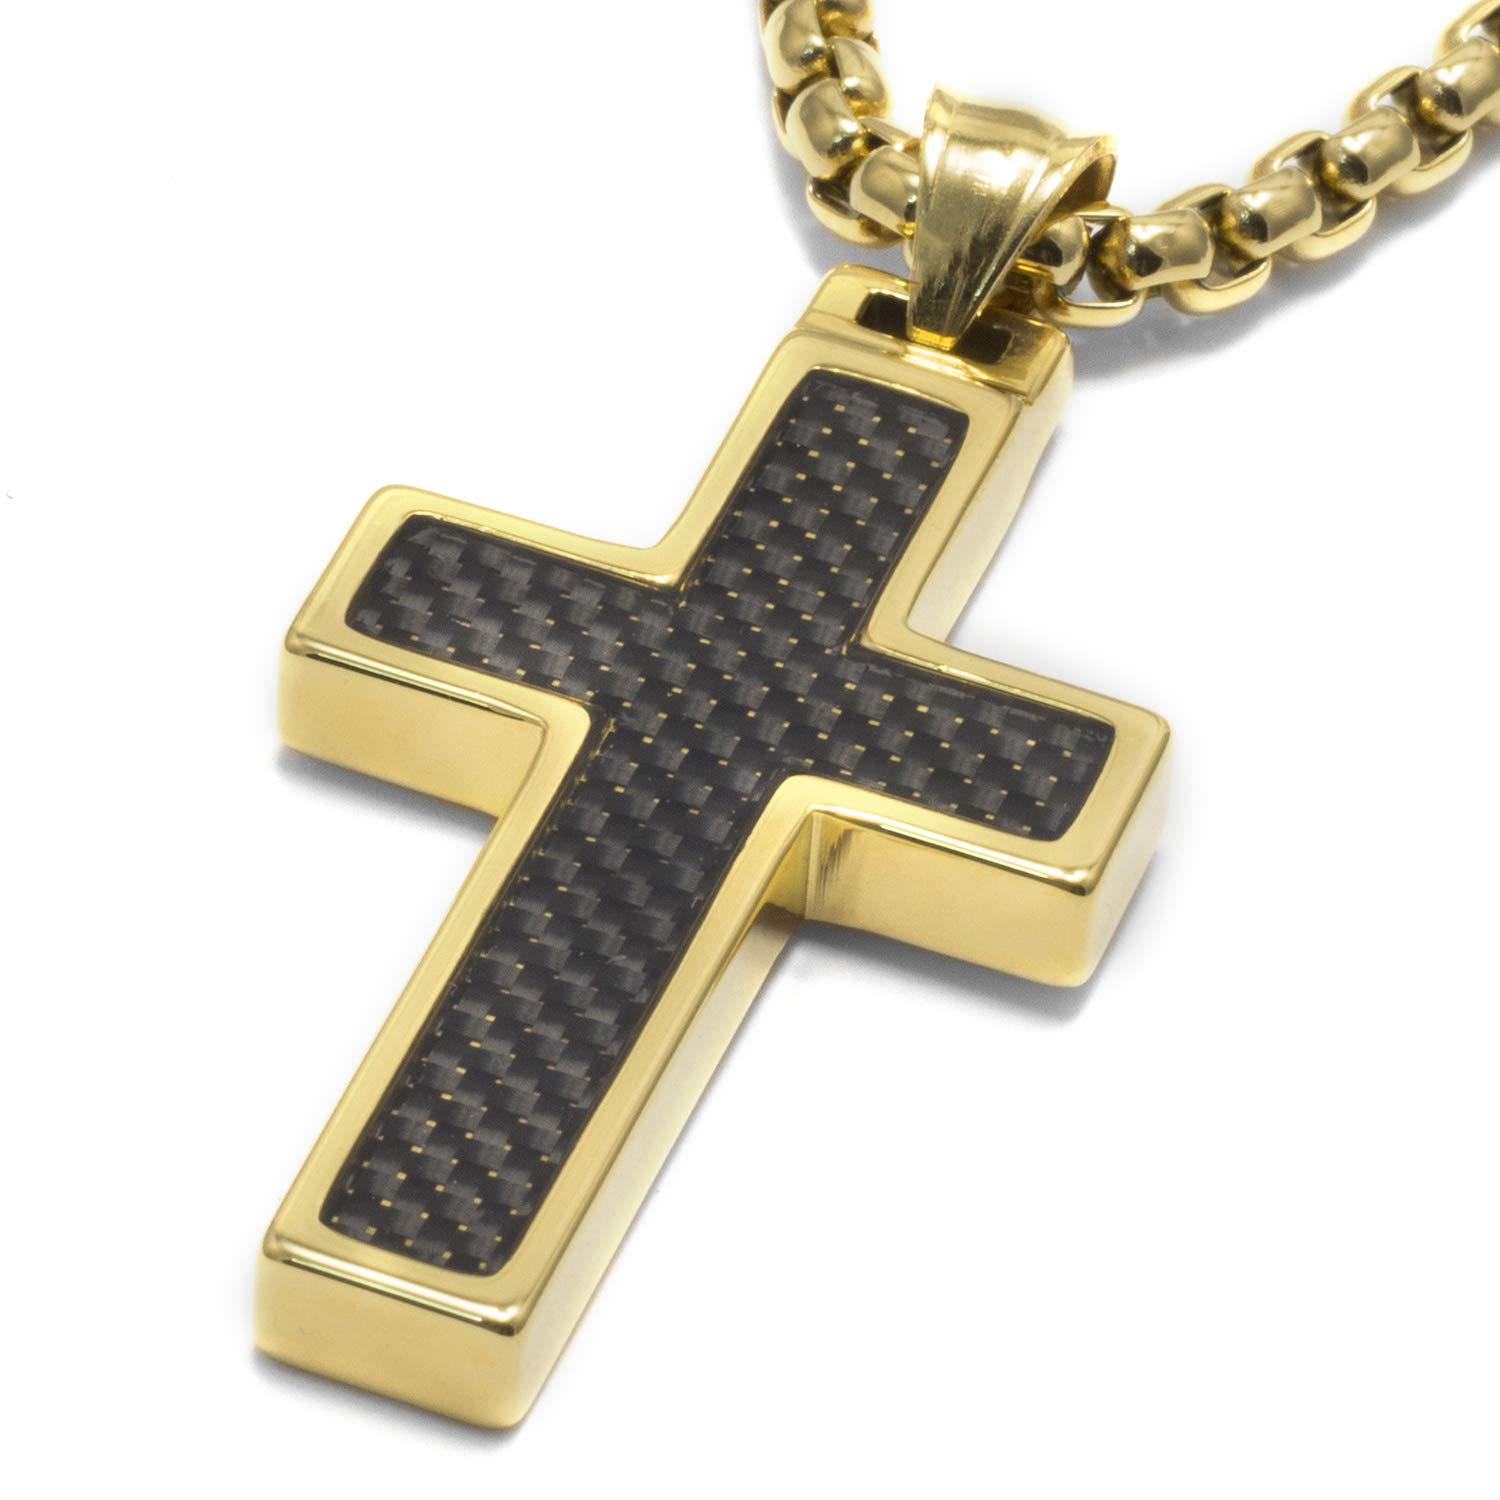 Unique GESTALT Tungsten Cross Pendant. 4mm Surgical Stainless Steel Box Chain. Black Carbon Fiber Inlay. Gold Plated. 22 inch Chain by GESTALT COUTURE